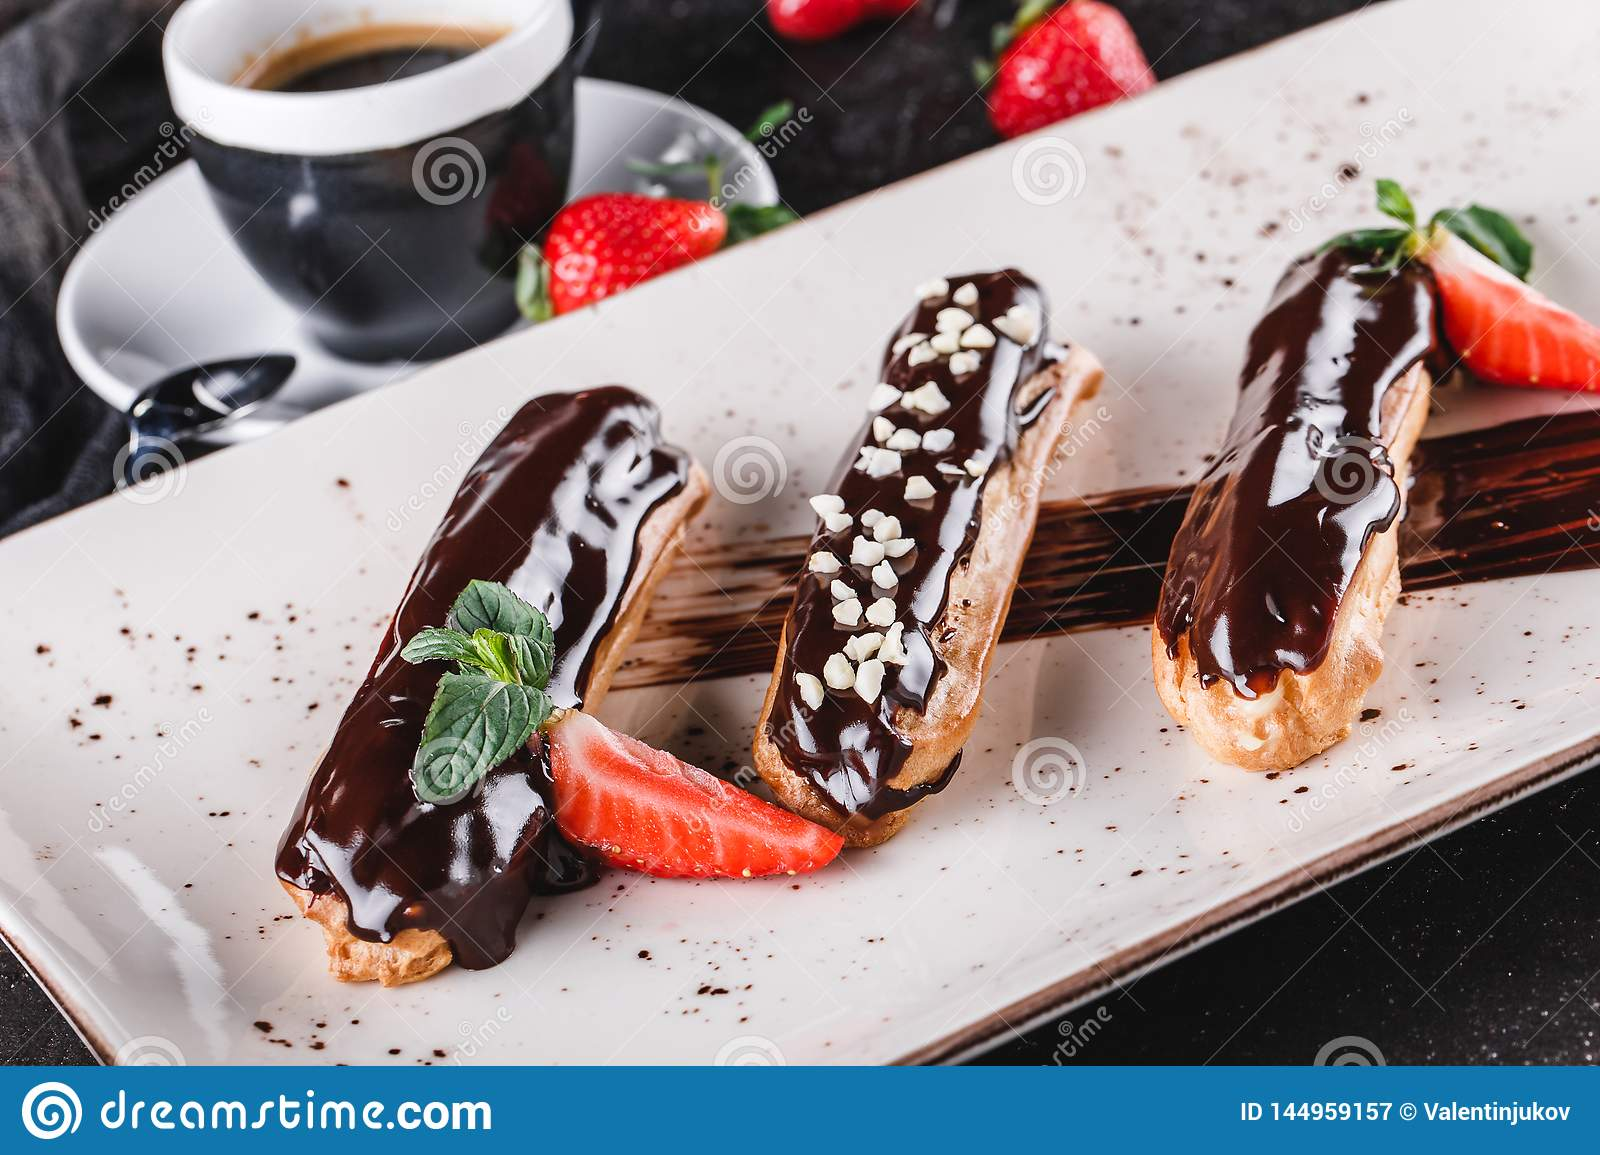 Homemade cake eclairs or profiteroles with custard, chocolate and strawberries on dark background served with cup of coffee